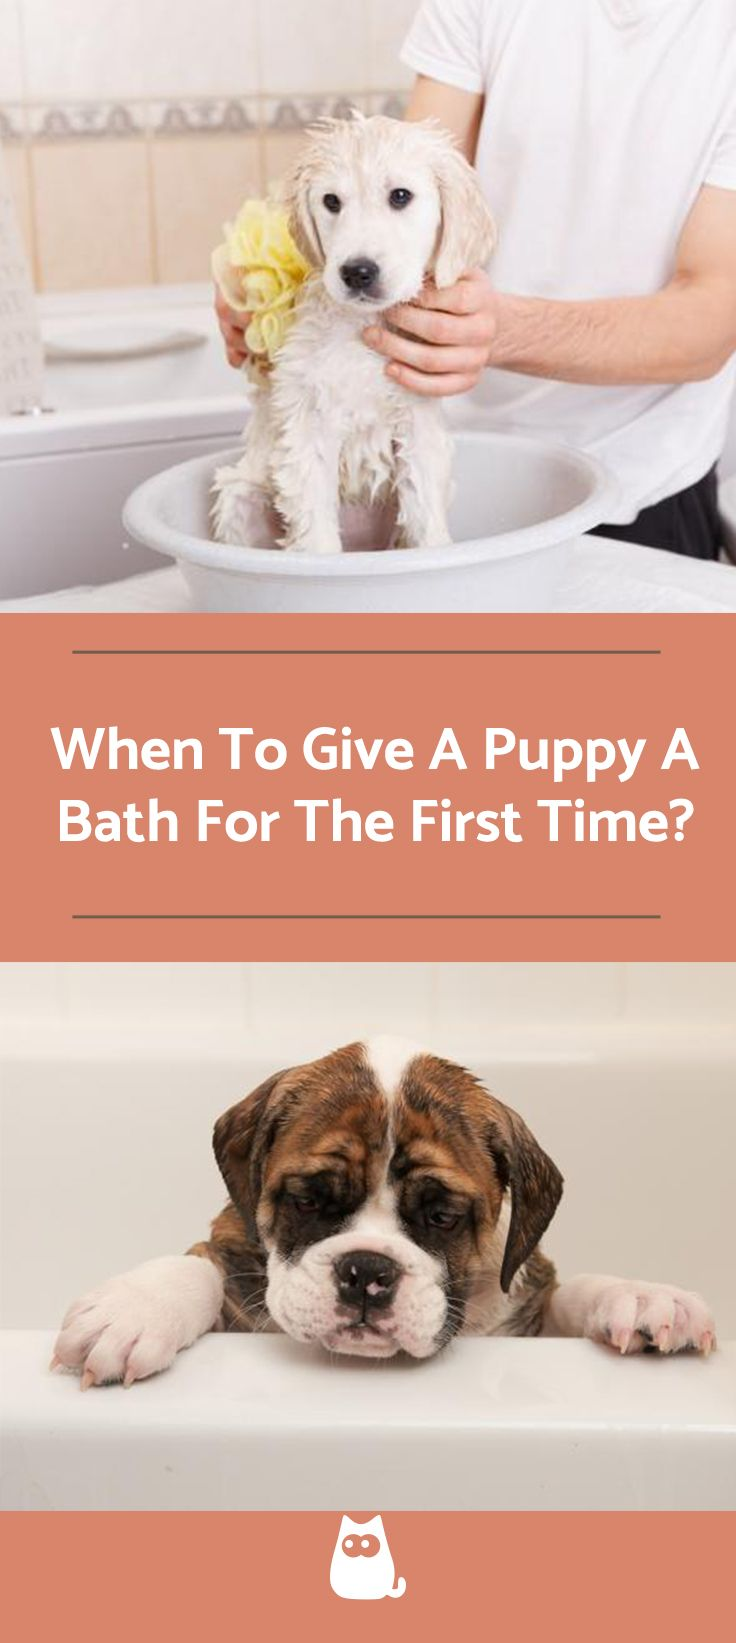 When To Give A Puppy A Bath For The First Time Bathing A Puppy